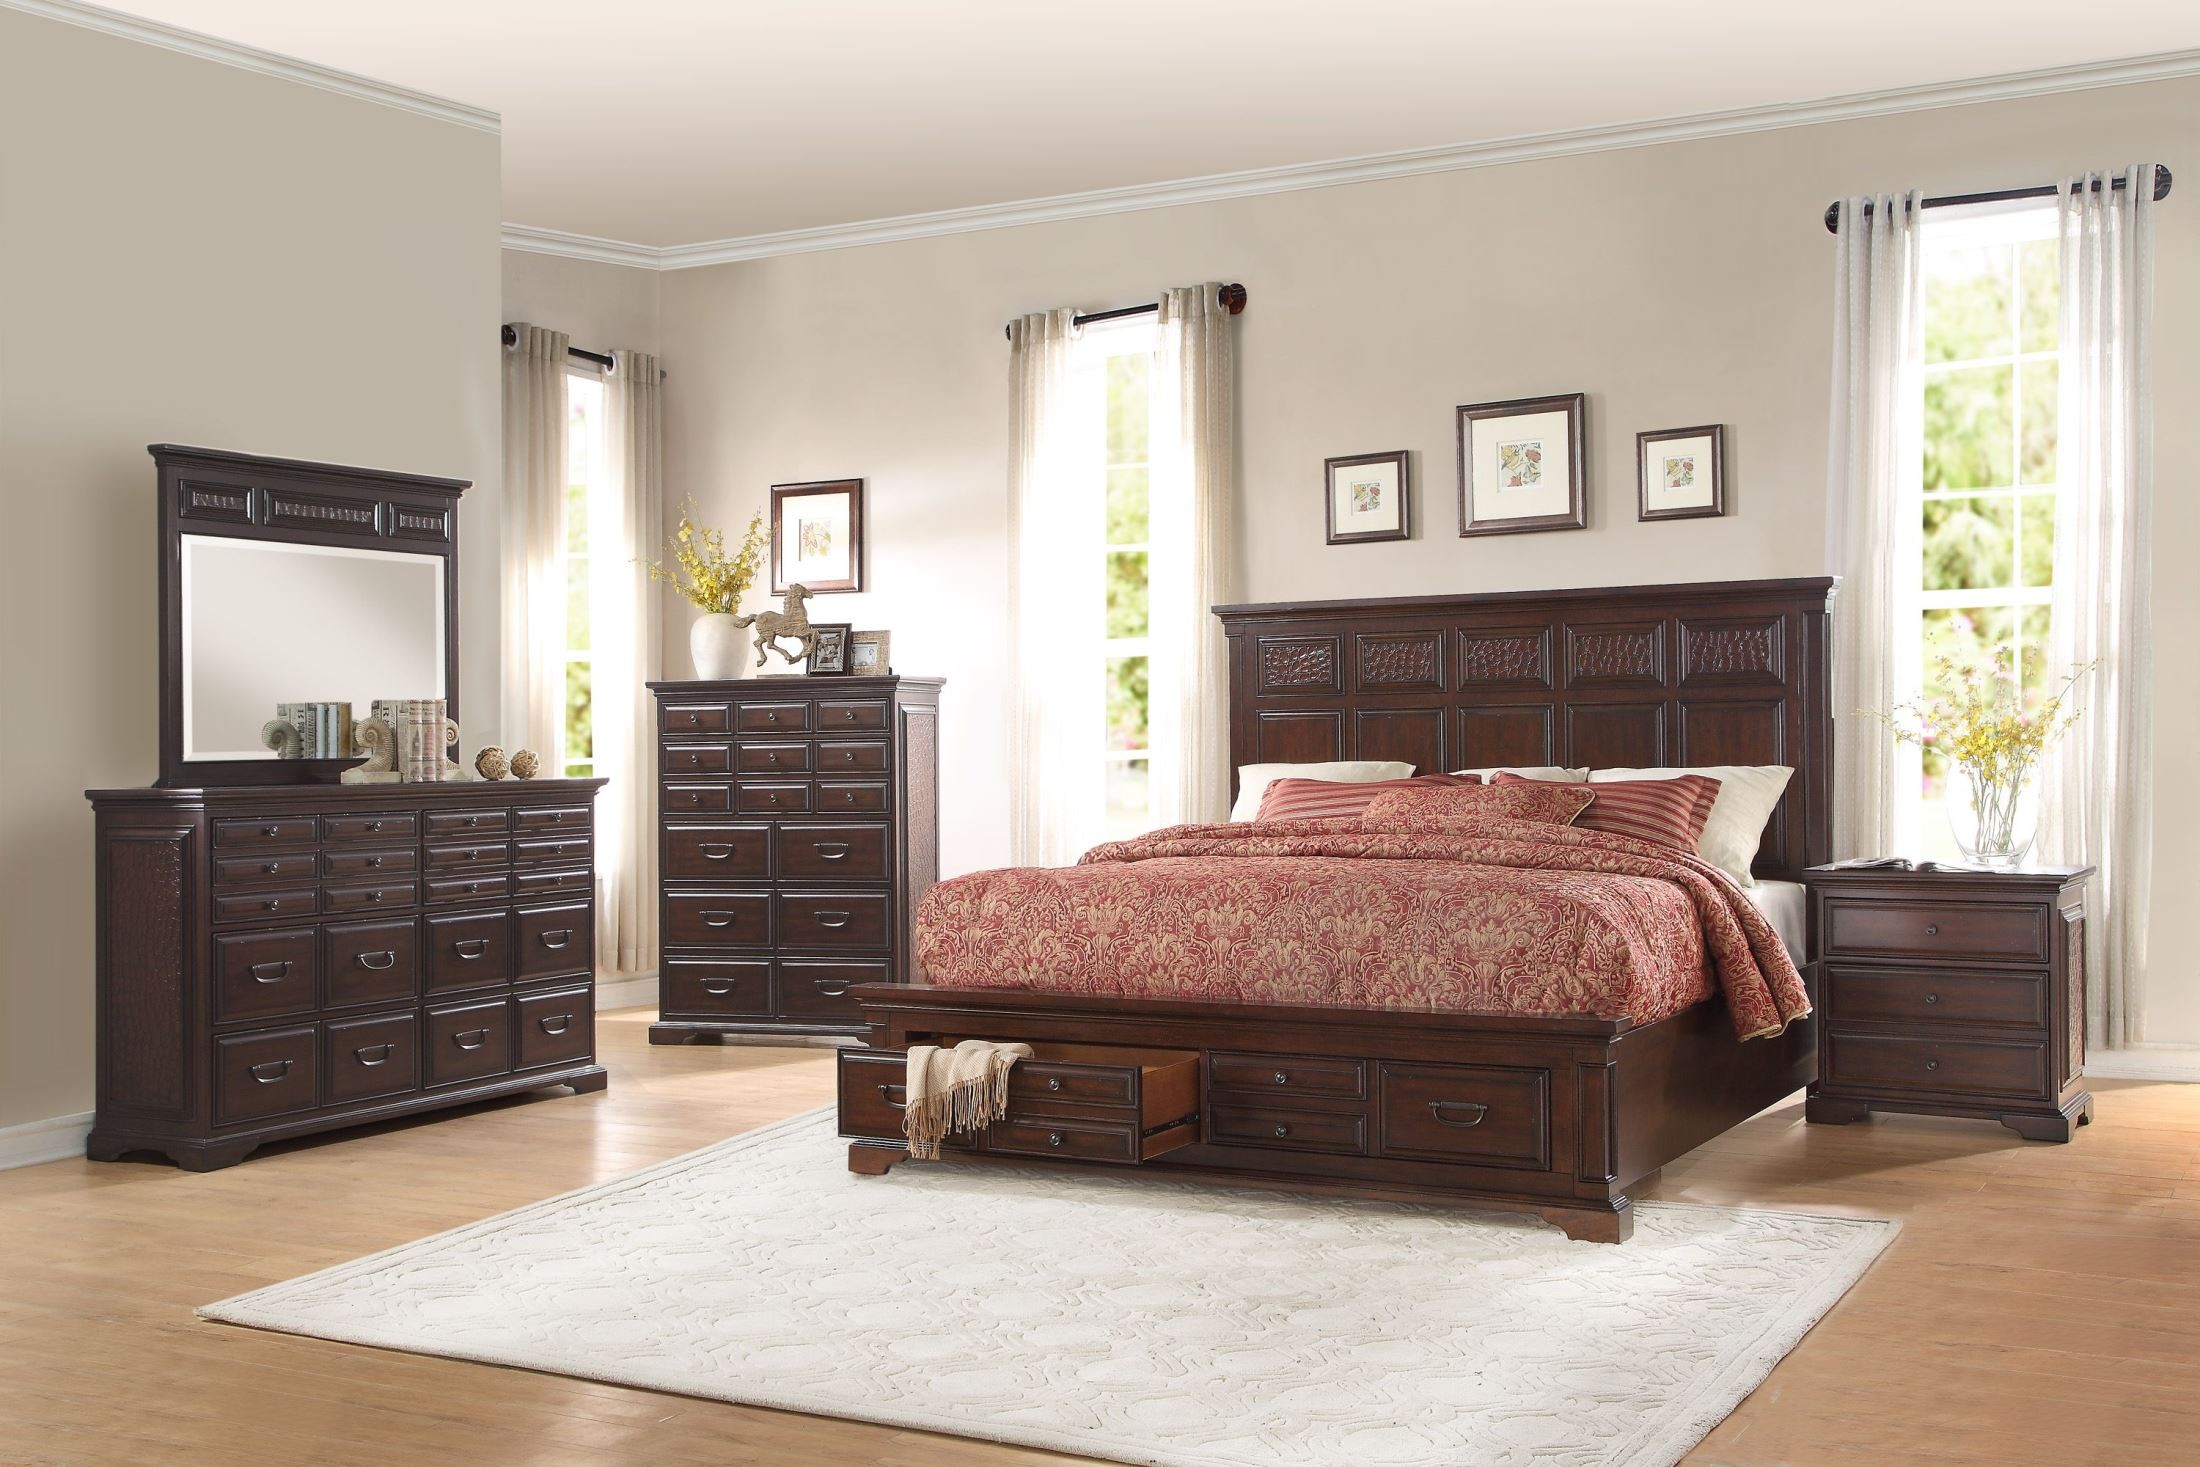 Cranfills cherry cal king storage platform bed from - California king storage bedroom sets ...